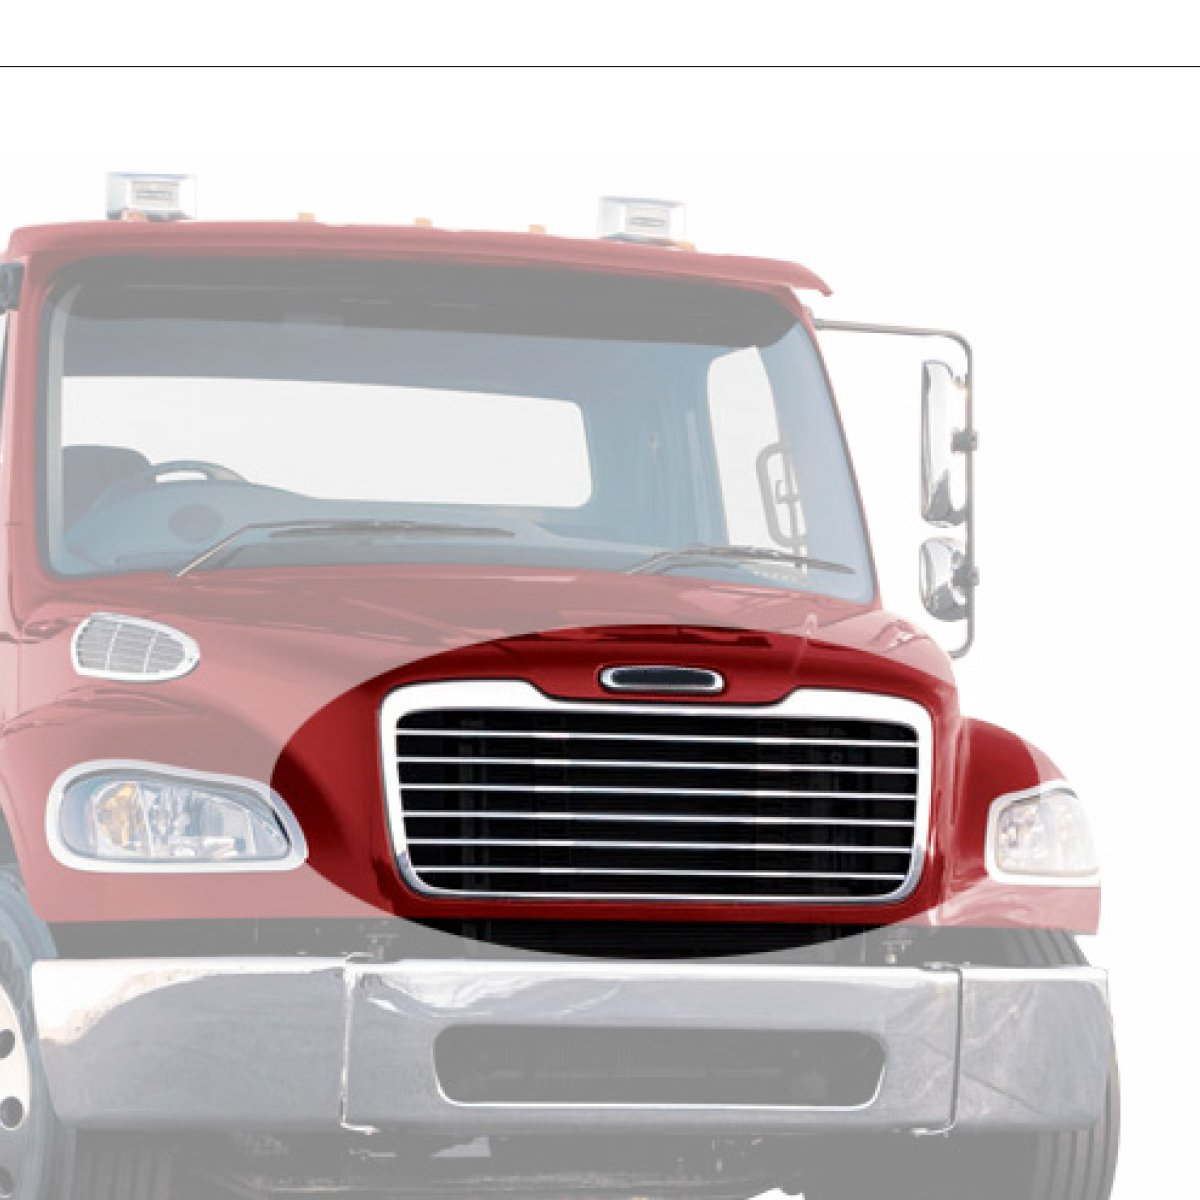 2015 Freightliner M2 Amu Location Wiring Diagram Amazoncom Grand General 89305 Chrome Plastic Grille With Black Steel Bug Screen For 2008 Business